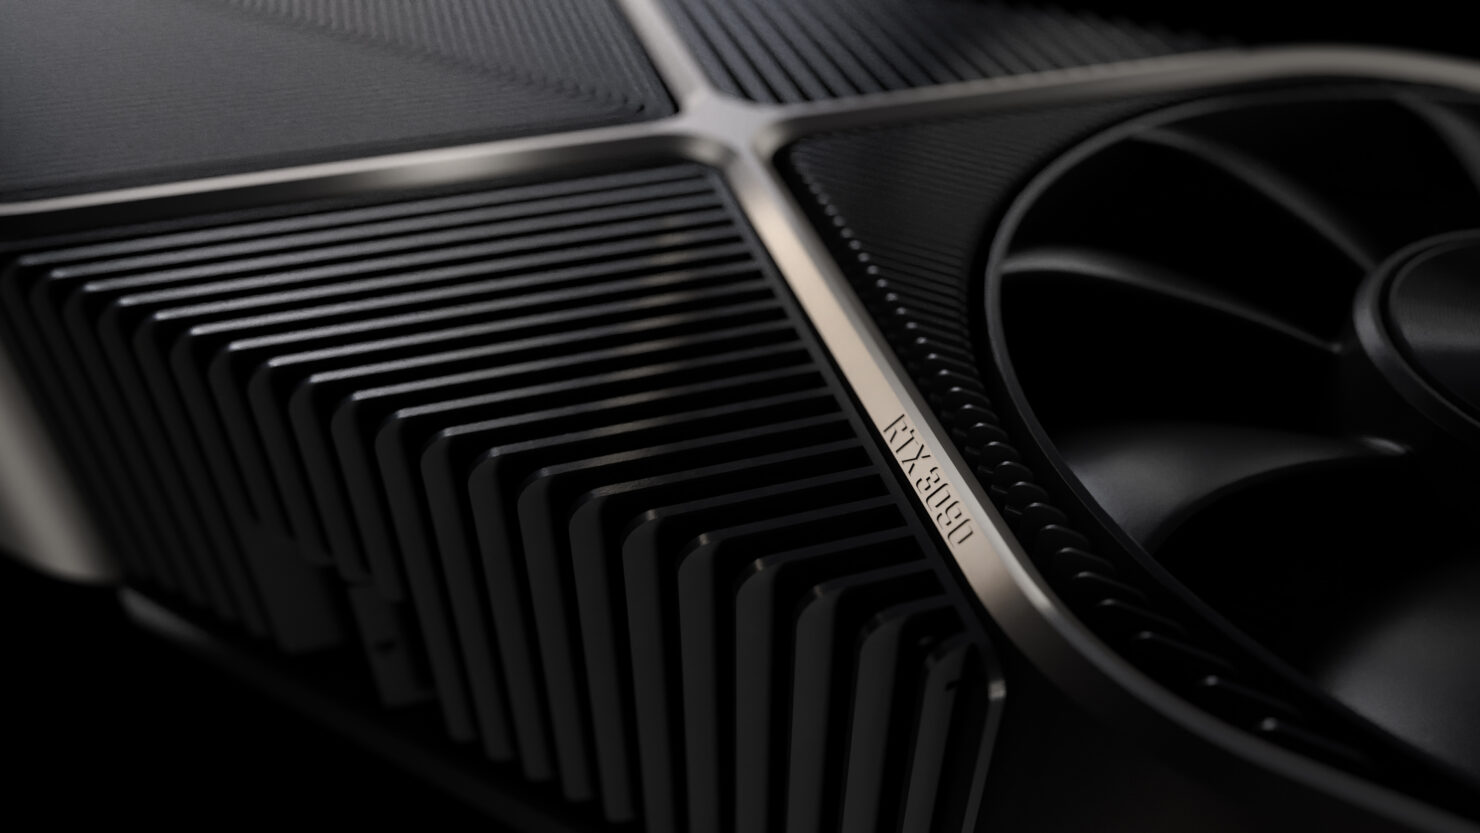 nvidia-geforce-rtx-3080-ti-now-rumored-to-launch-in-april-with-12-gb-gddr6x-memory-&-10240-cuda-cores